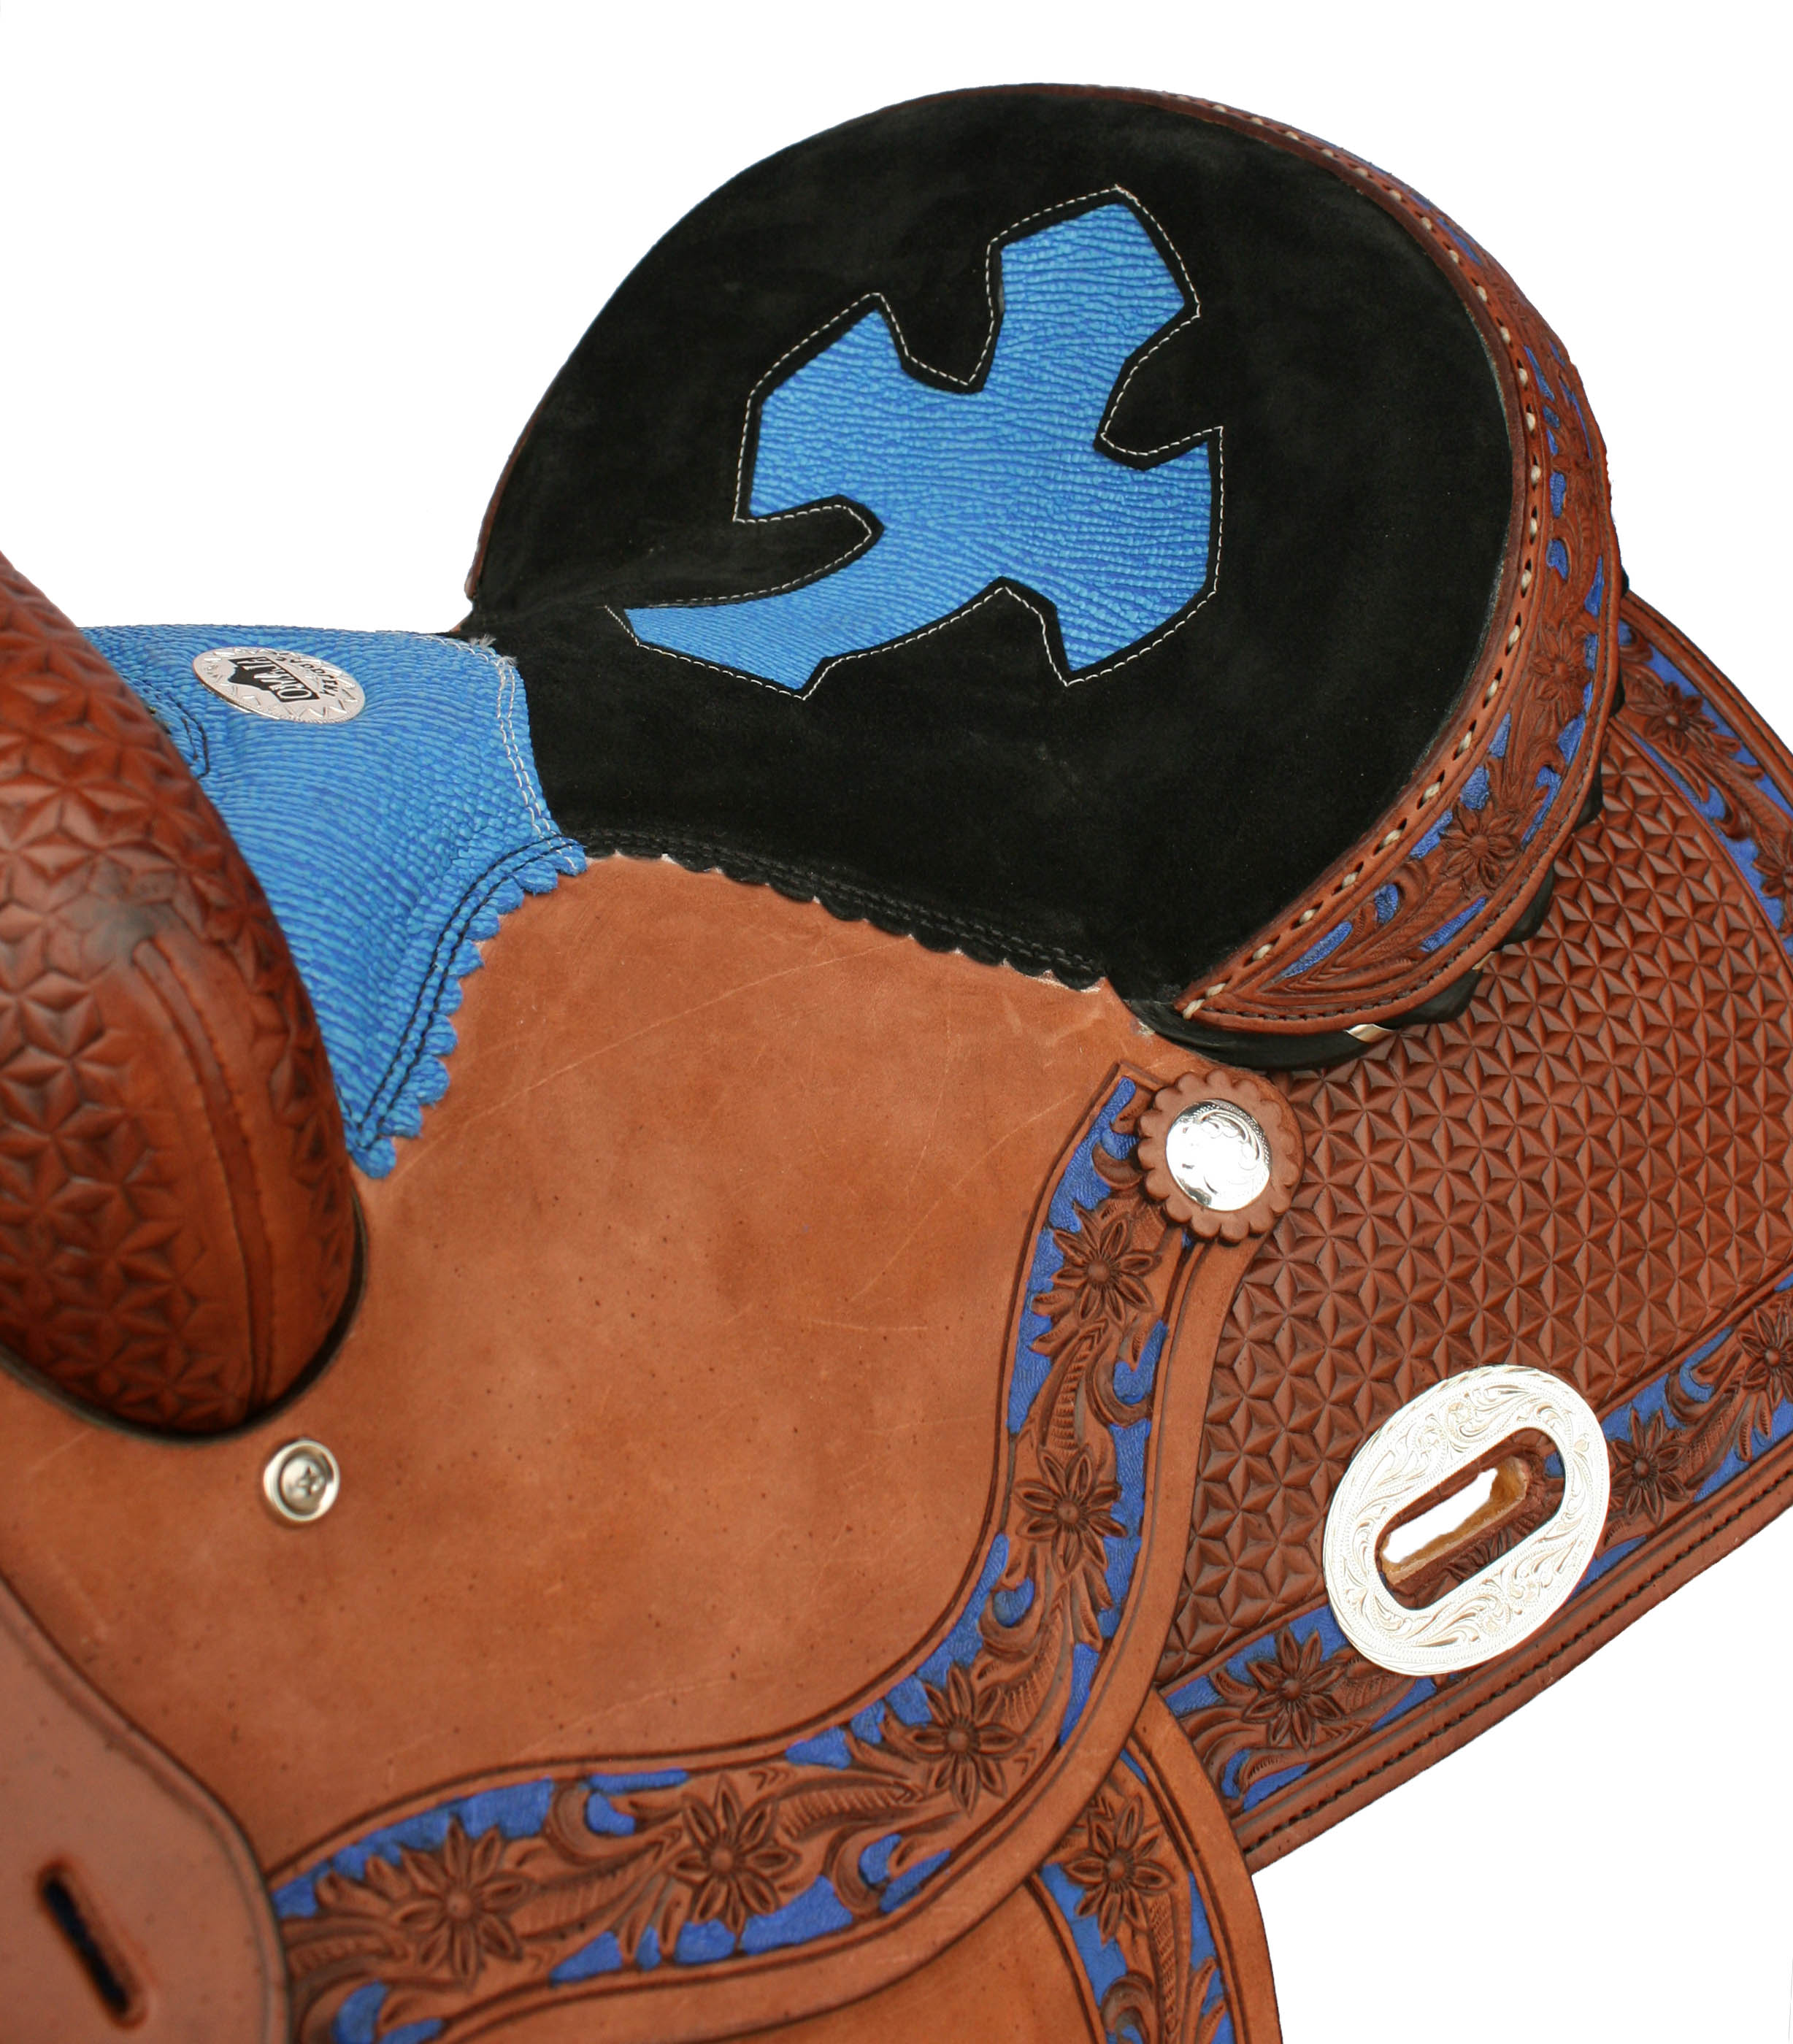 1204-BS TOAST BARREL SADDLE, BLUE SHARK INLAID SEAT